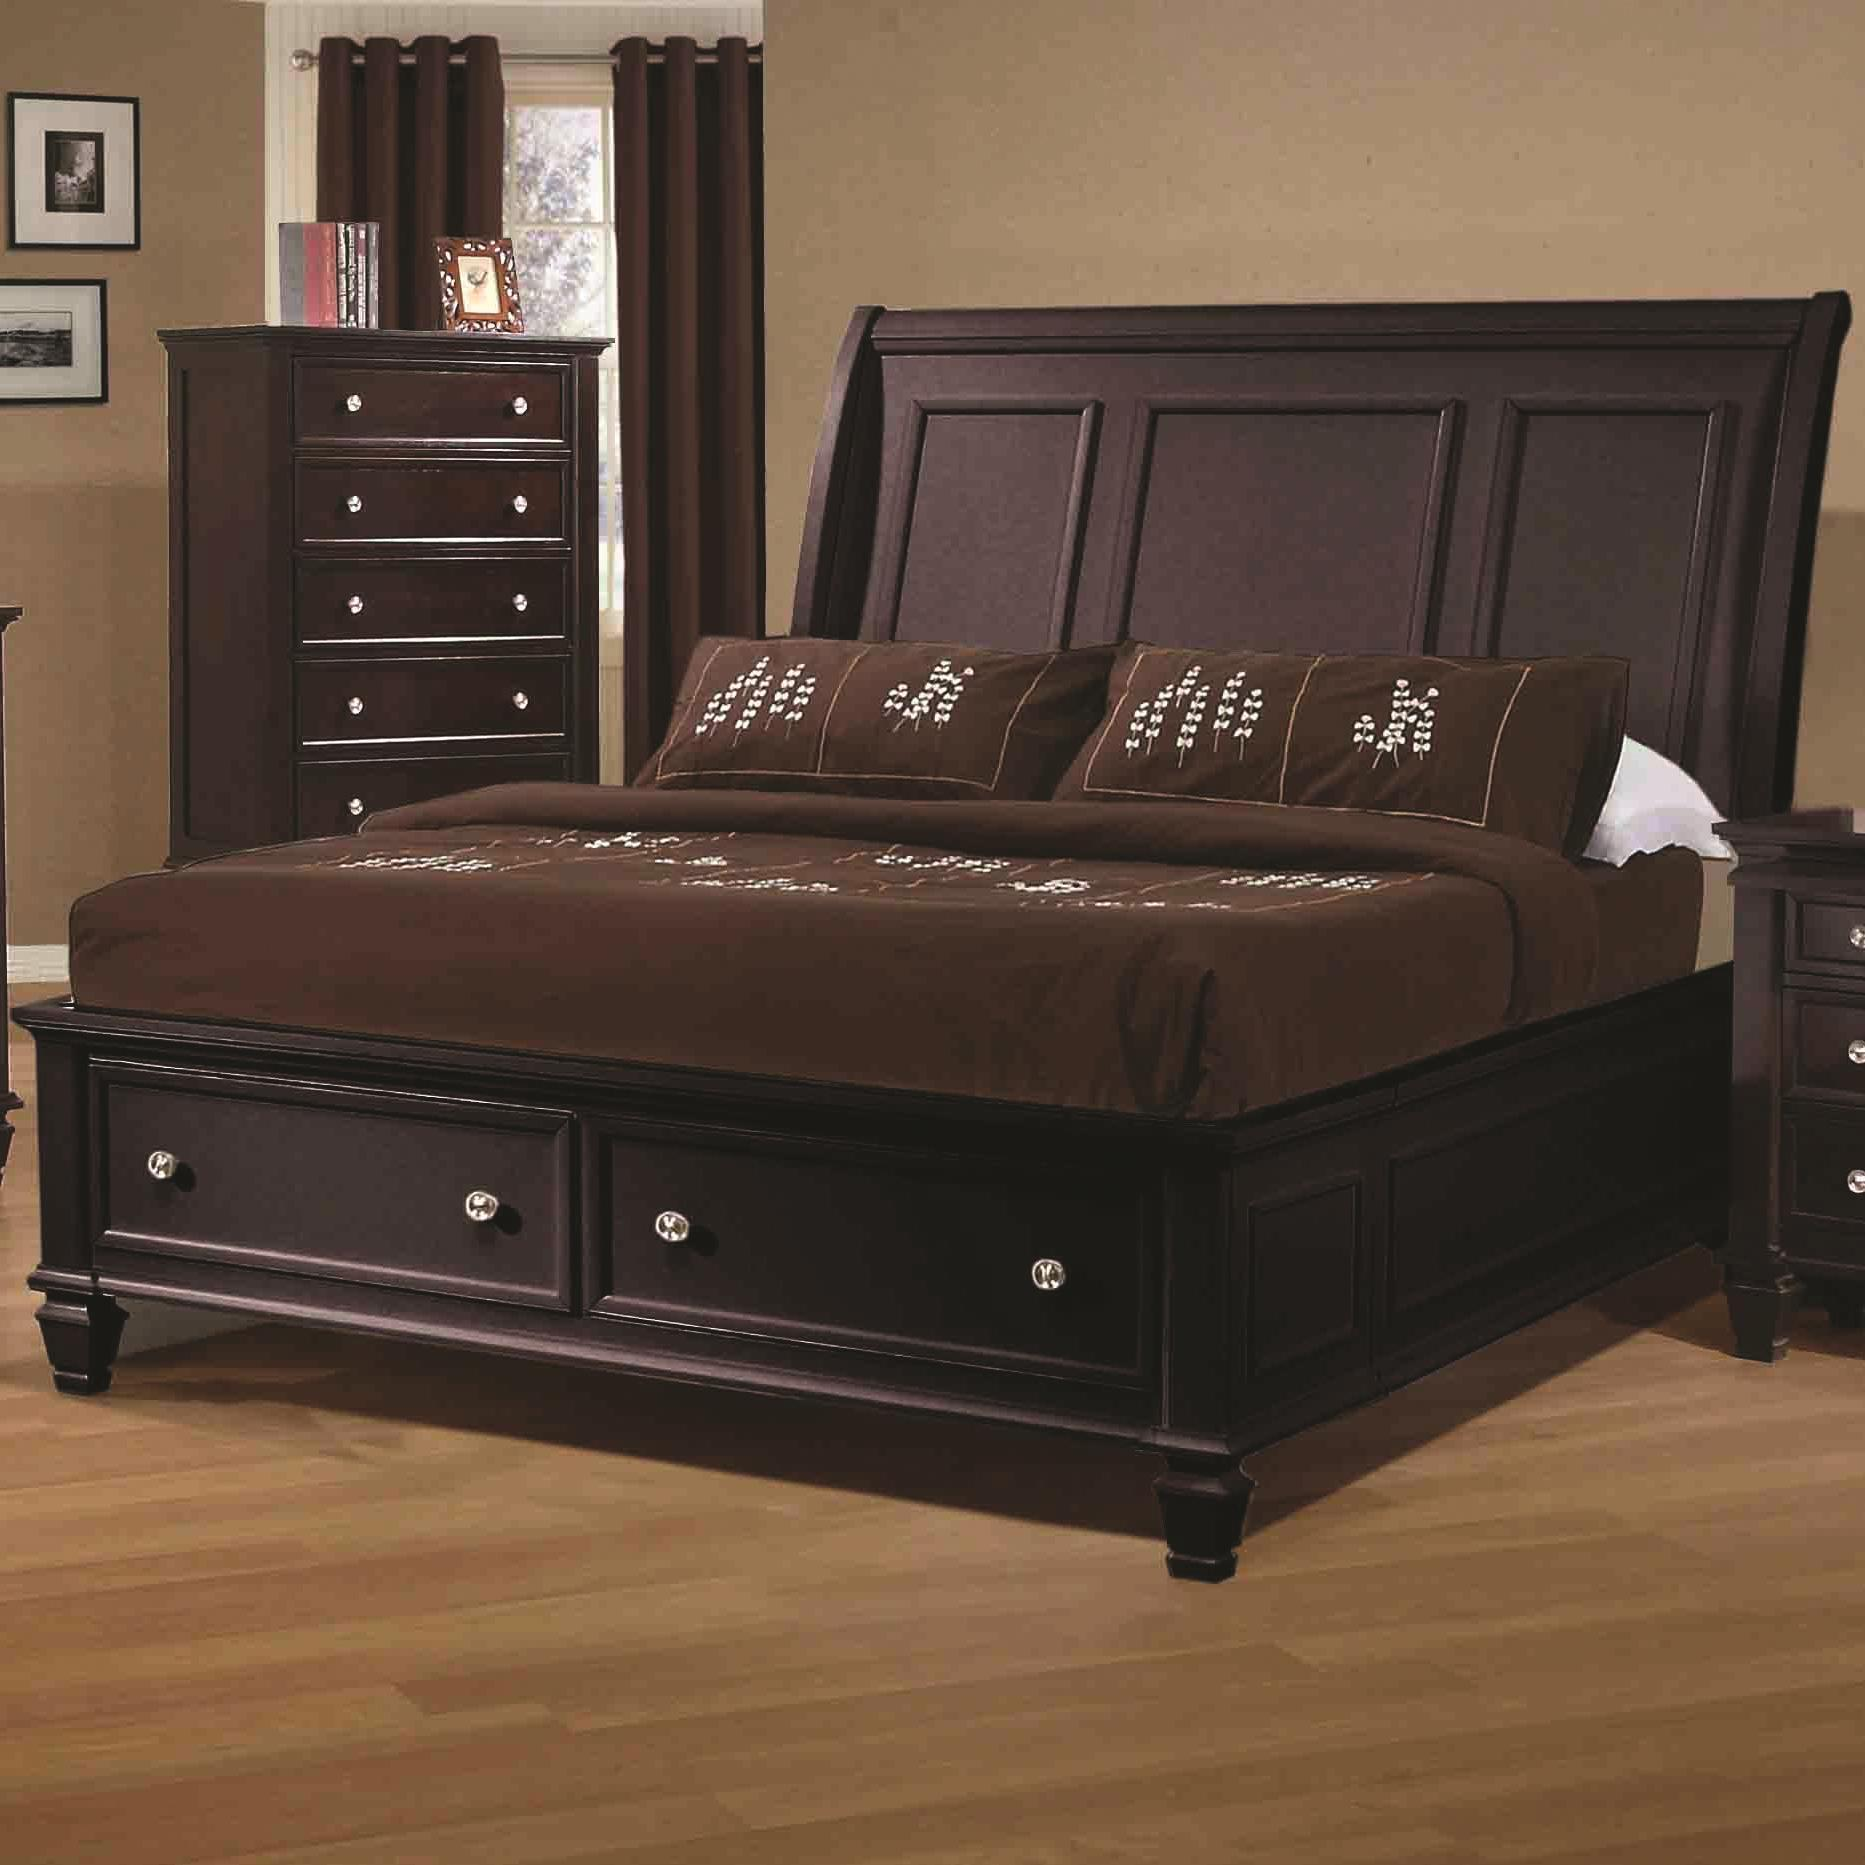 Coaster Sandy Beach Queen Sleigh Bed  - Item Number: 201990Q